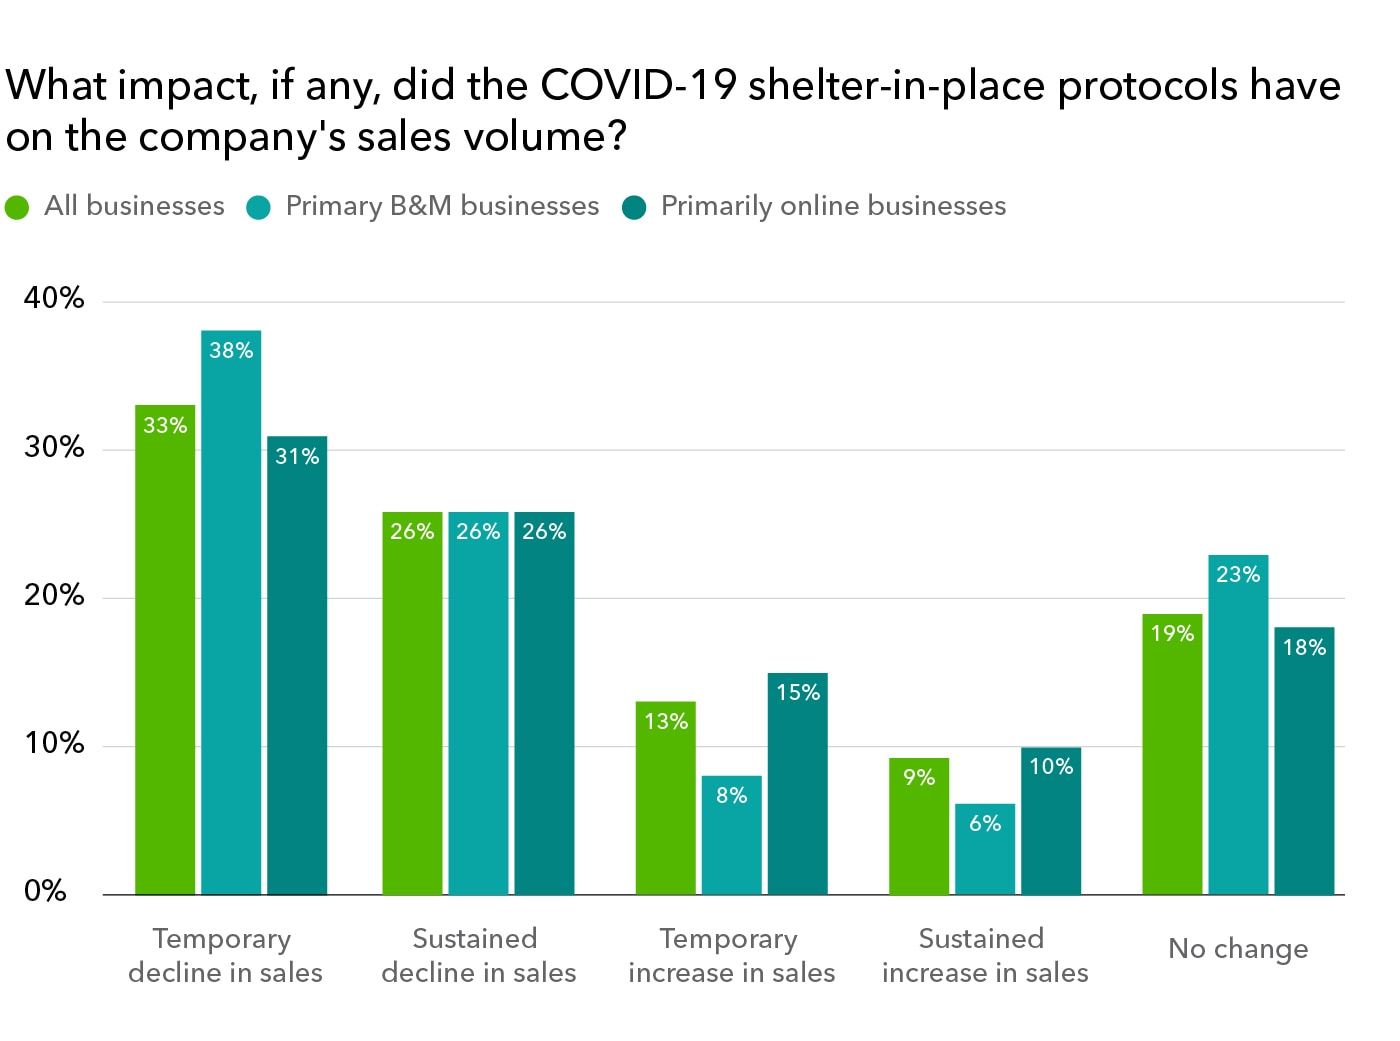 Impact of COVID-19 shelter in place protocols on company business in 2020